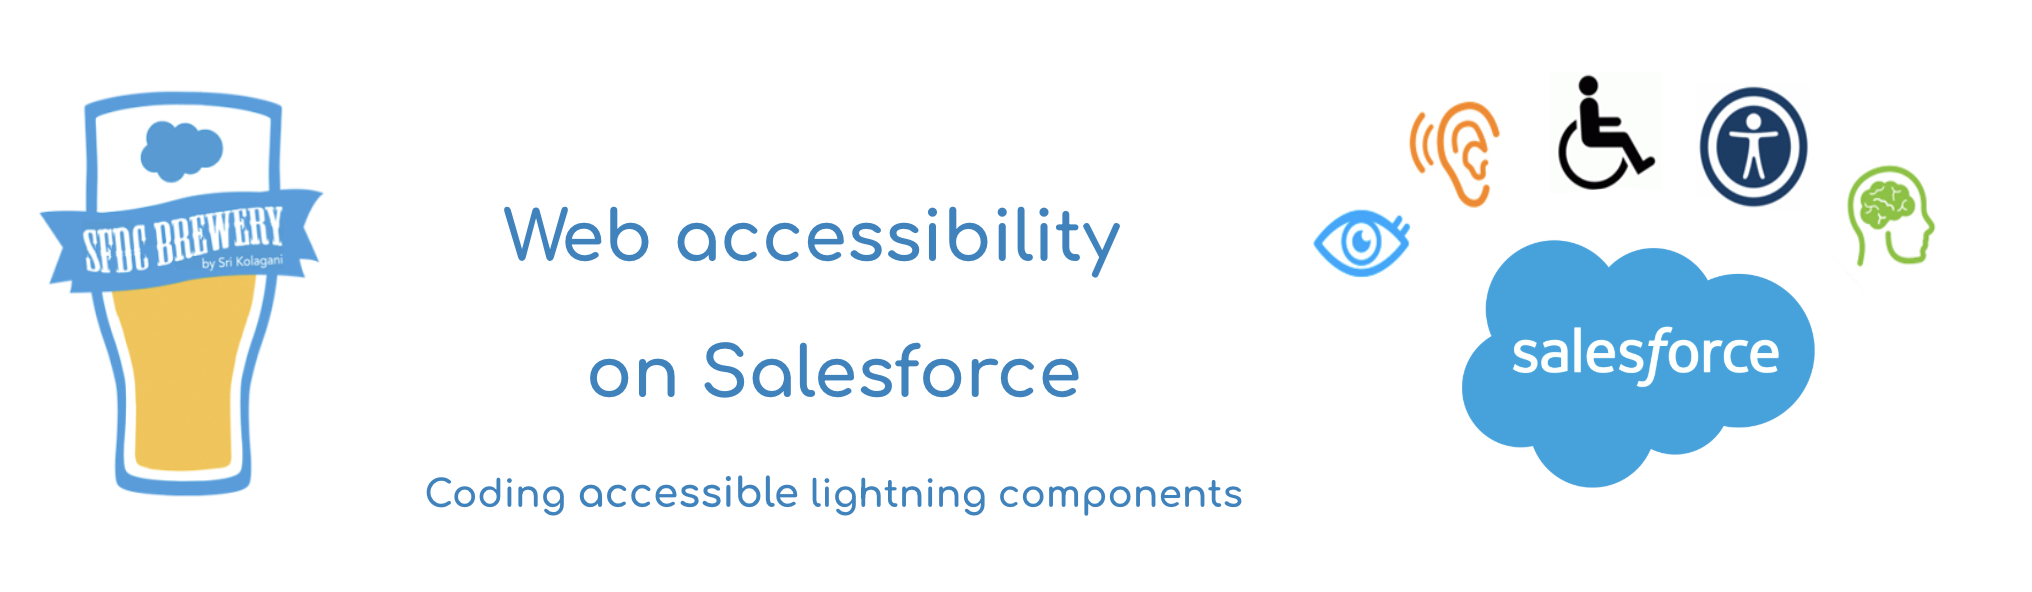 Coding for web accessibility on Salesforce – SFDC Brewery by